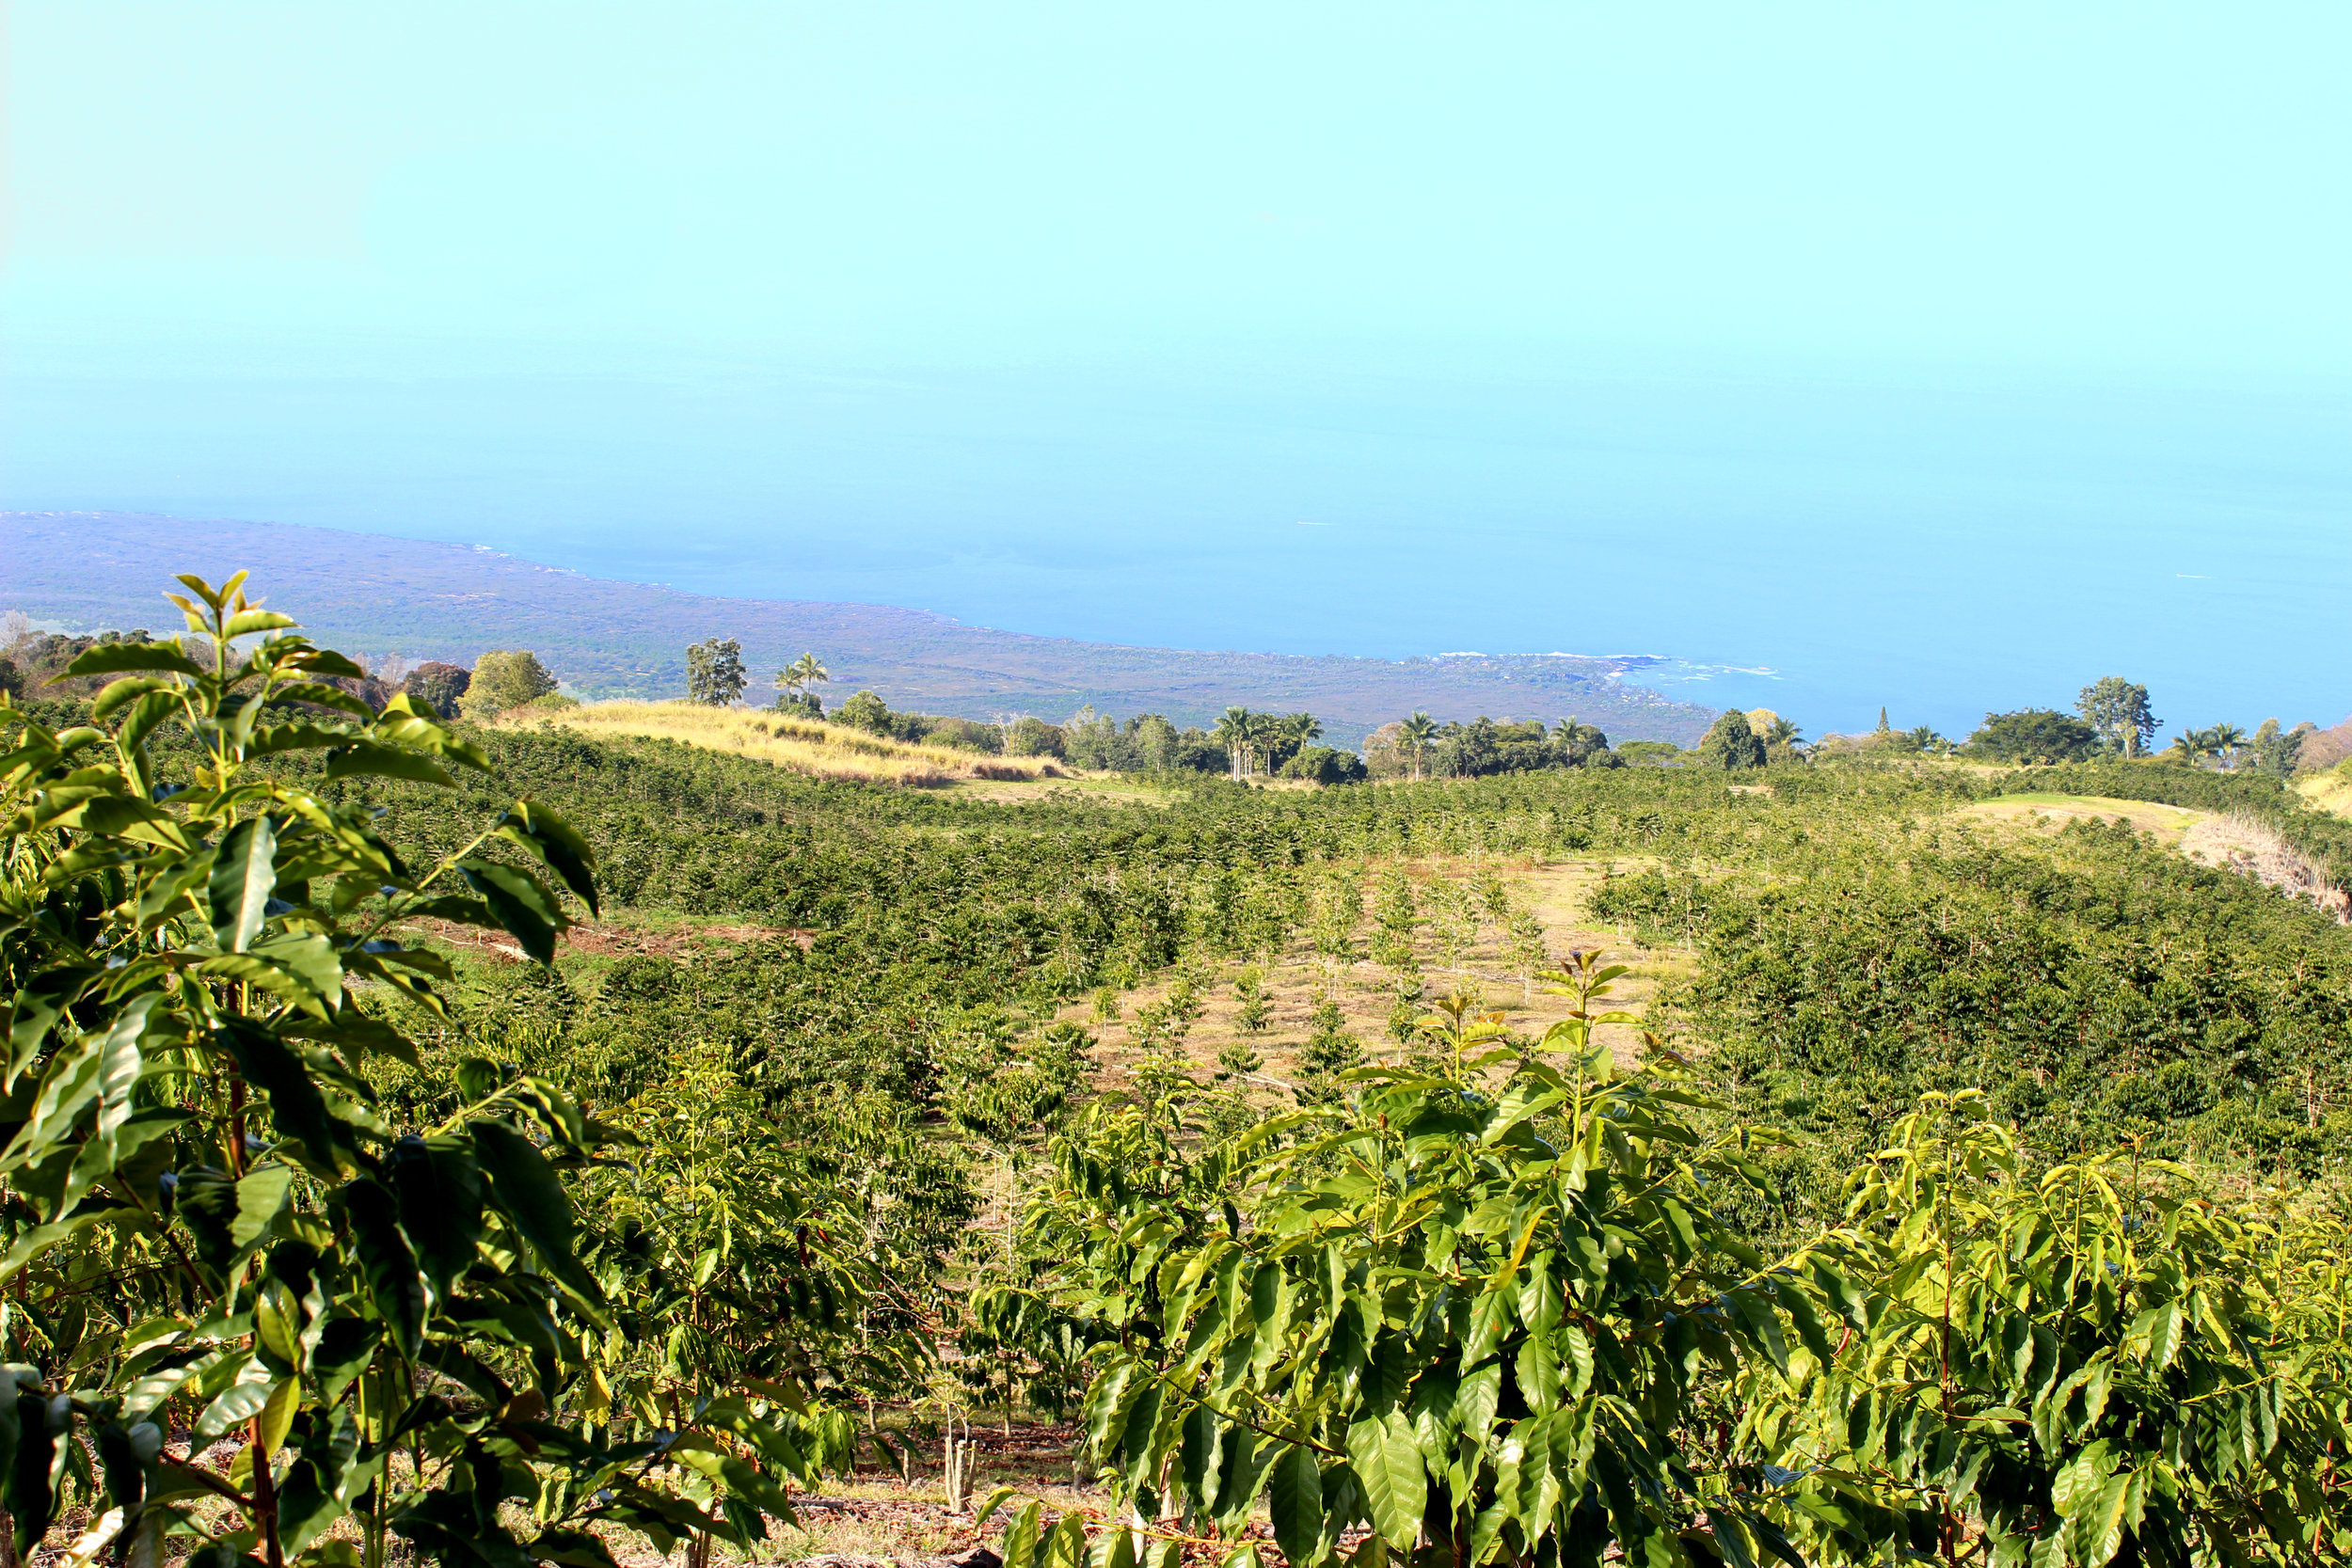 Honolulu Coffee Company farm in Kealakekua, Hawaii